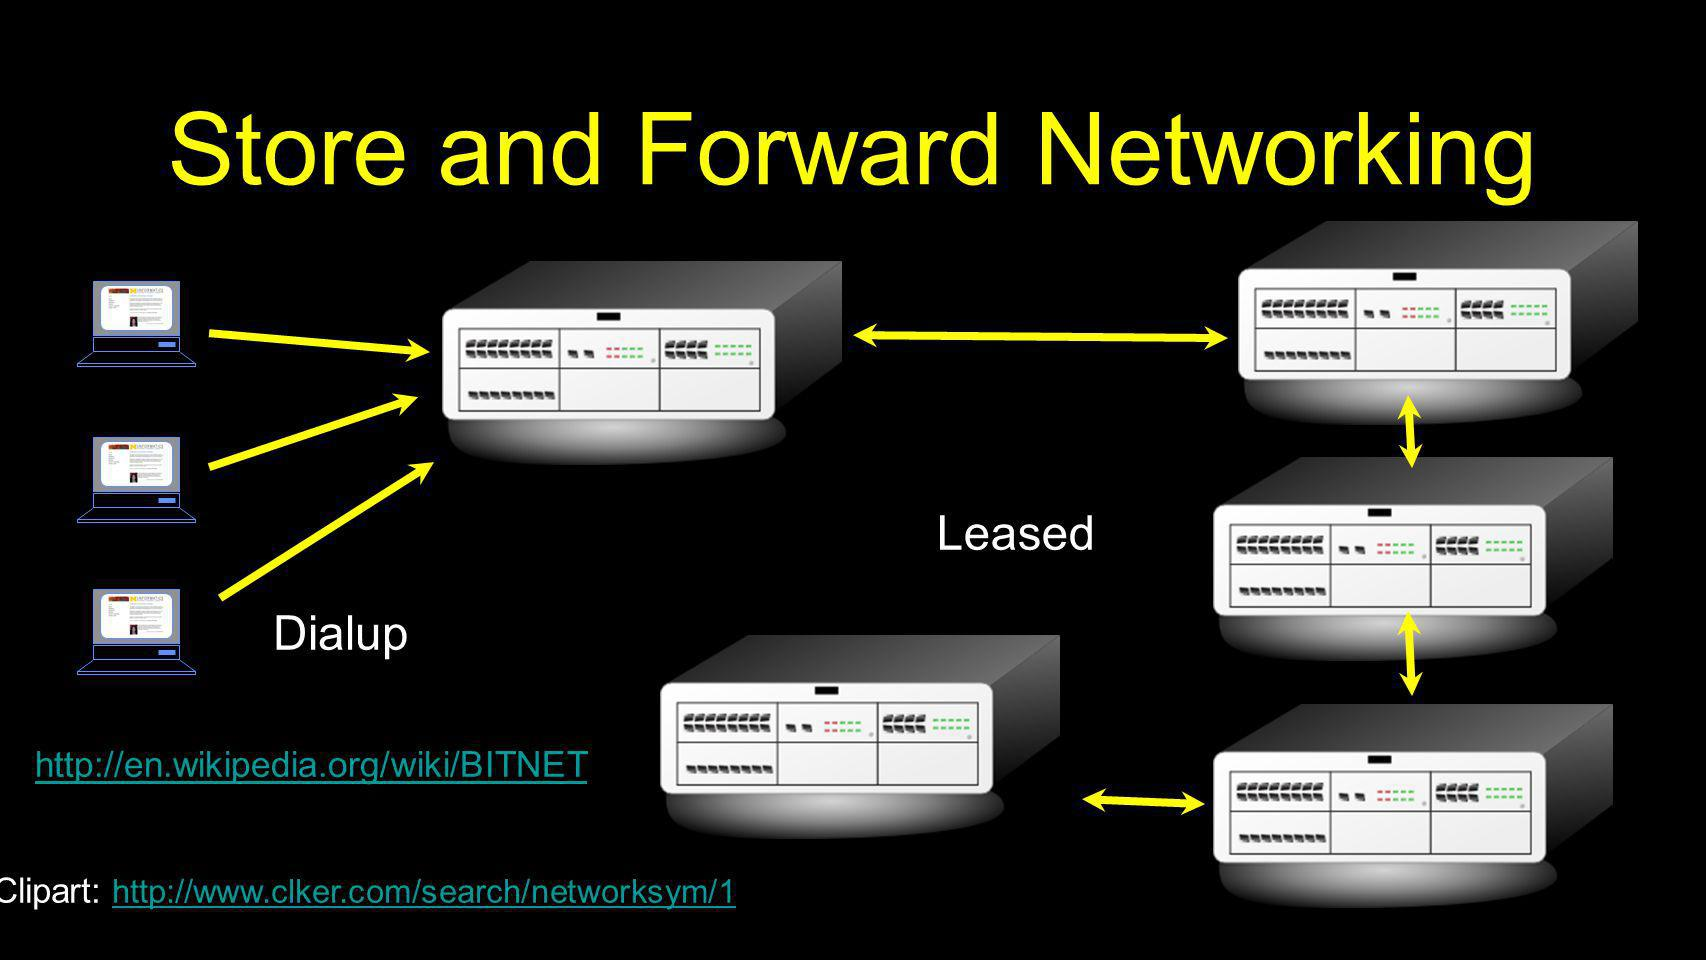 Store and Forward Networking